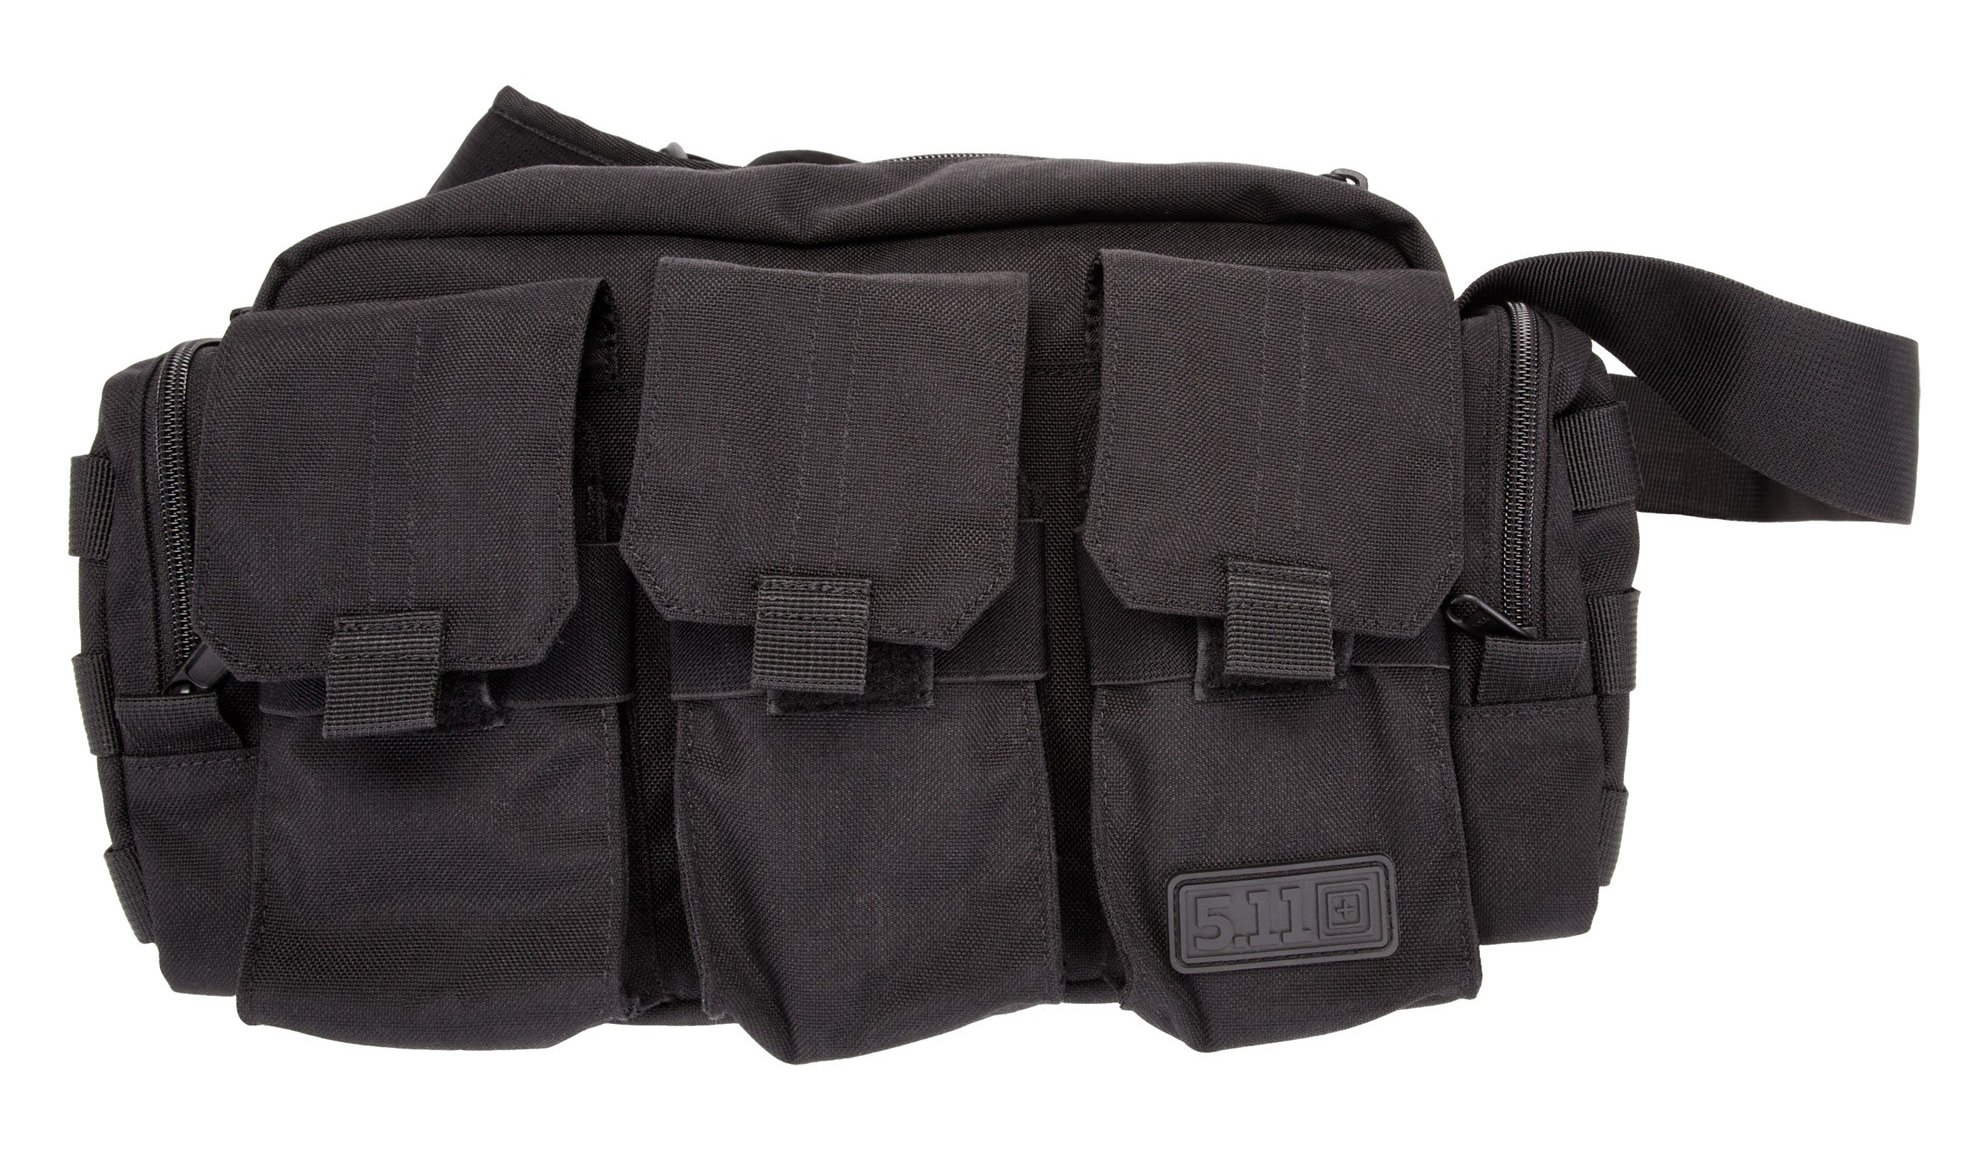 5.11 Tactical Bail Out Bag Molle Ammo Magazine Carrier Pack for Responders, Style 56026 by 5.11 (Image #2)